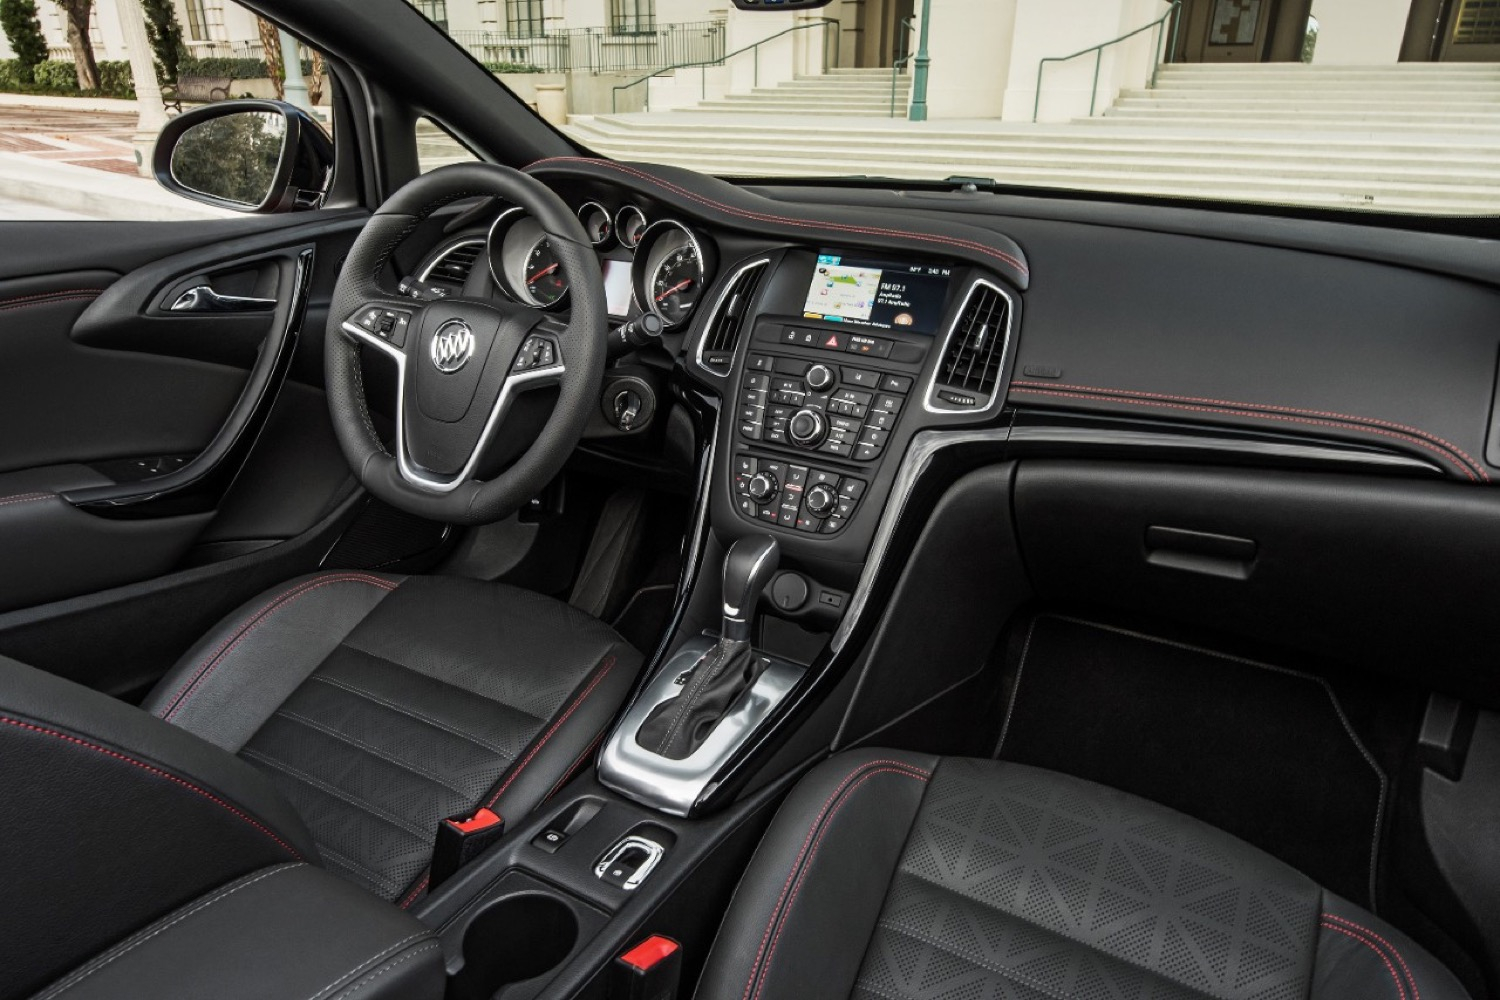 Buick Cascada Discount Cuts Price 16 Percent September 2019 2022 Buick Cascada Price, Reviews, Interior